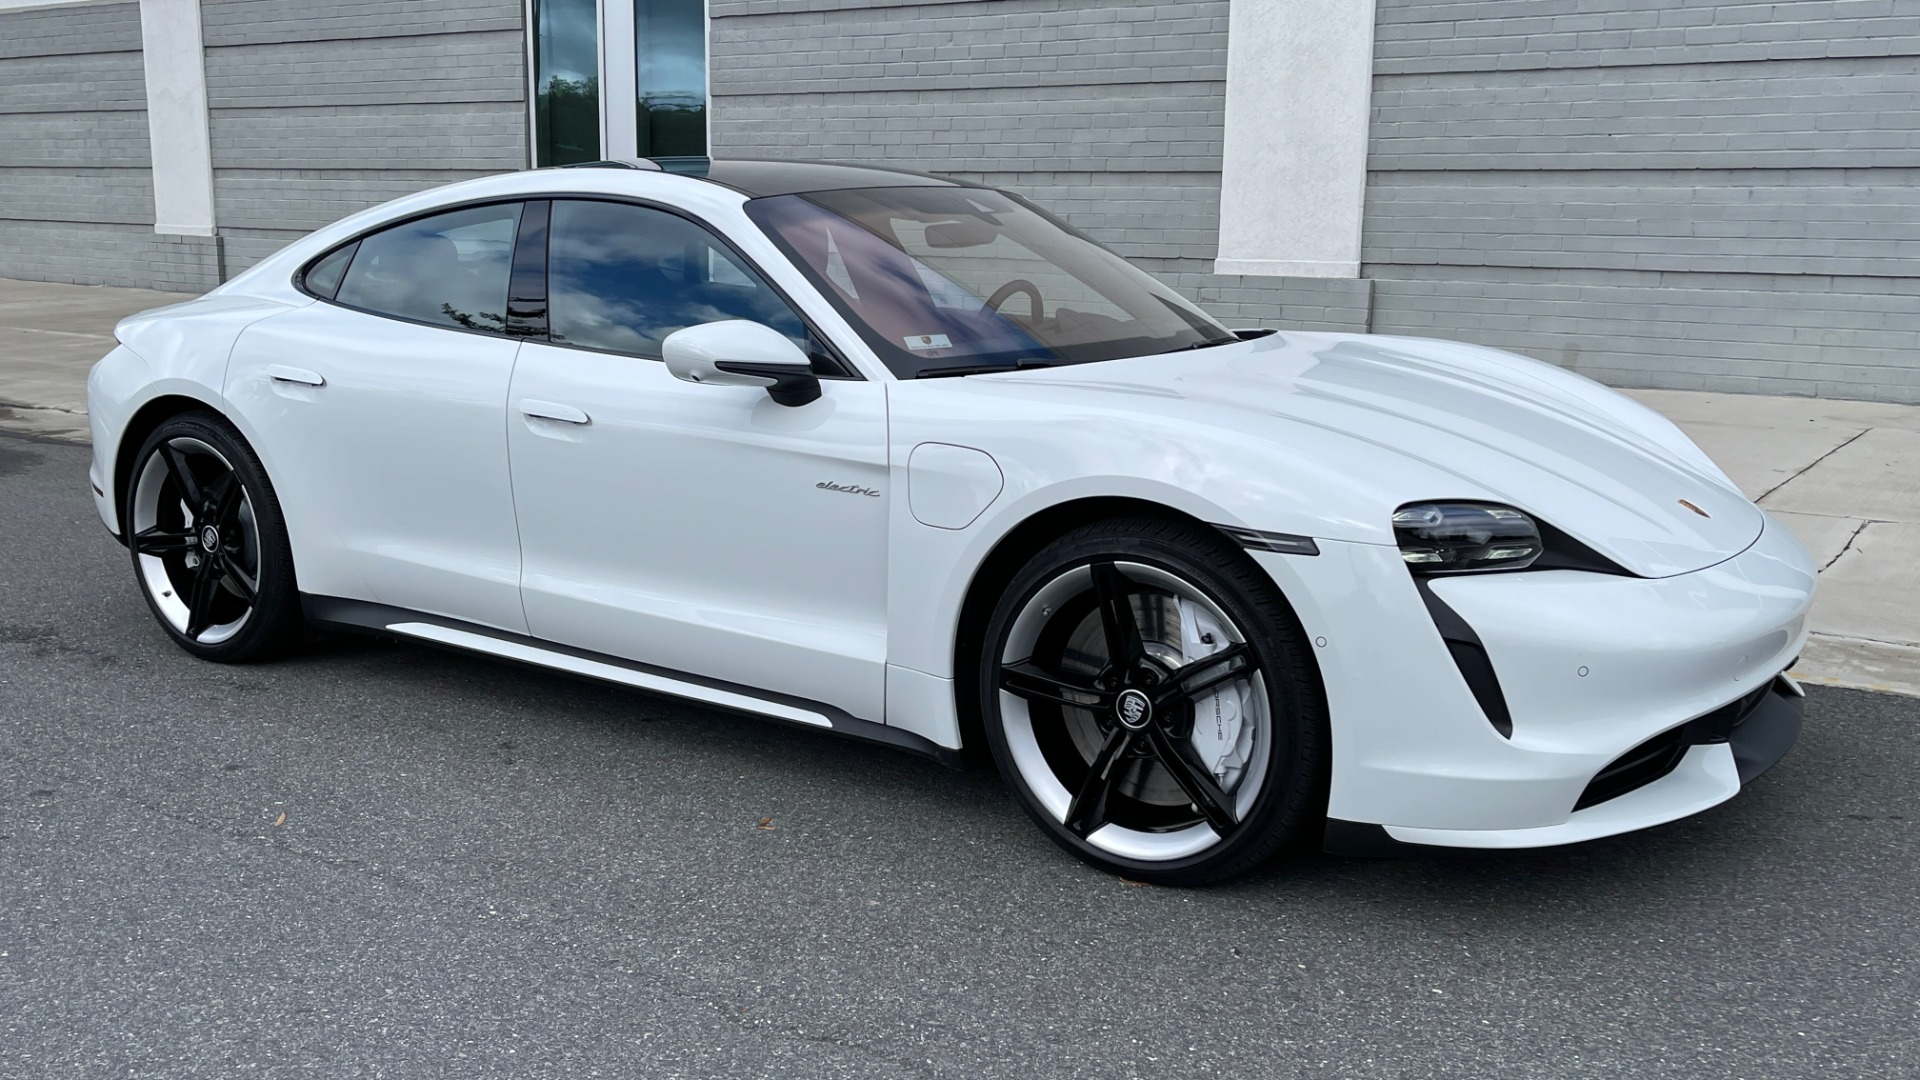 Used 2020 Porsche TAYCAN TURBO SEDAN / AWD / NAV / BOSE / PANO-ROOF / LCA / SURROUND VIEW for sale $162,995 at Formula Imports in Charlotte NC 28227 5